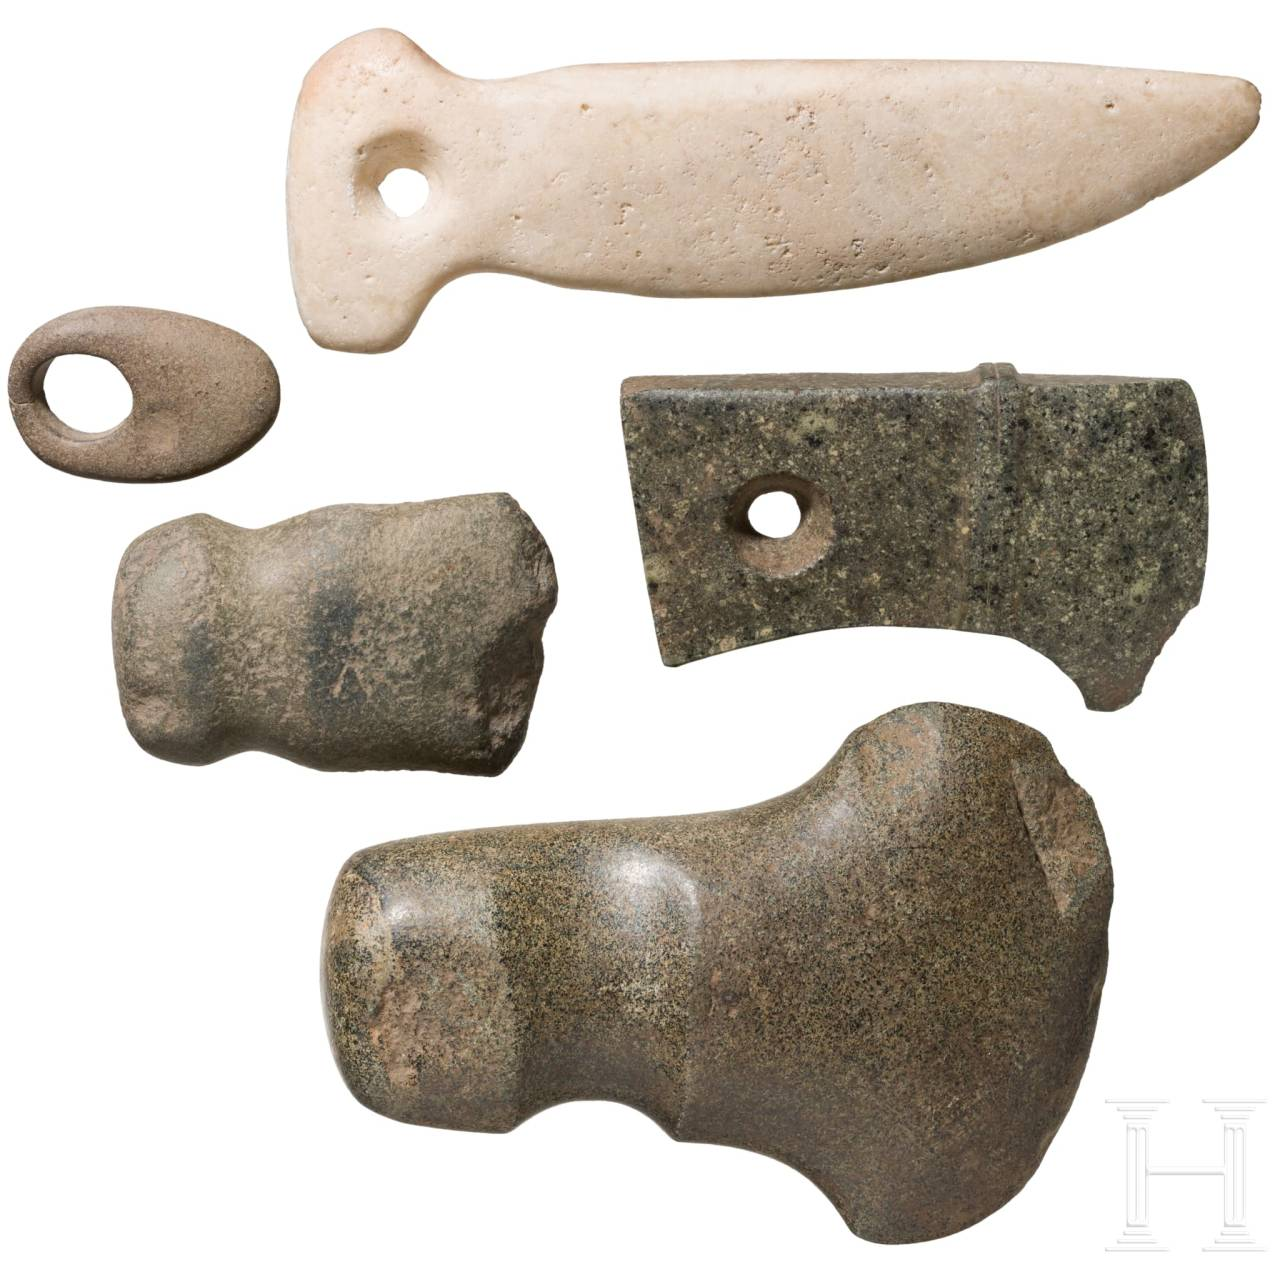 Five Central and South American stone tools, circa 3000 B.C. – 1000 A.D.